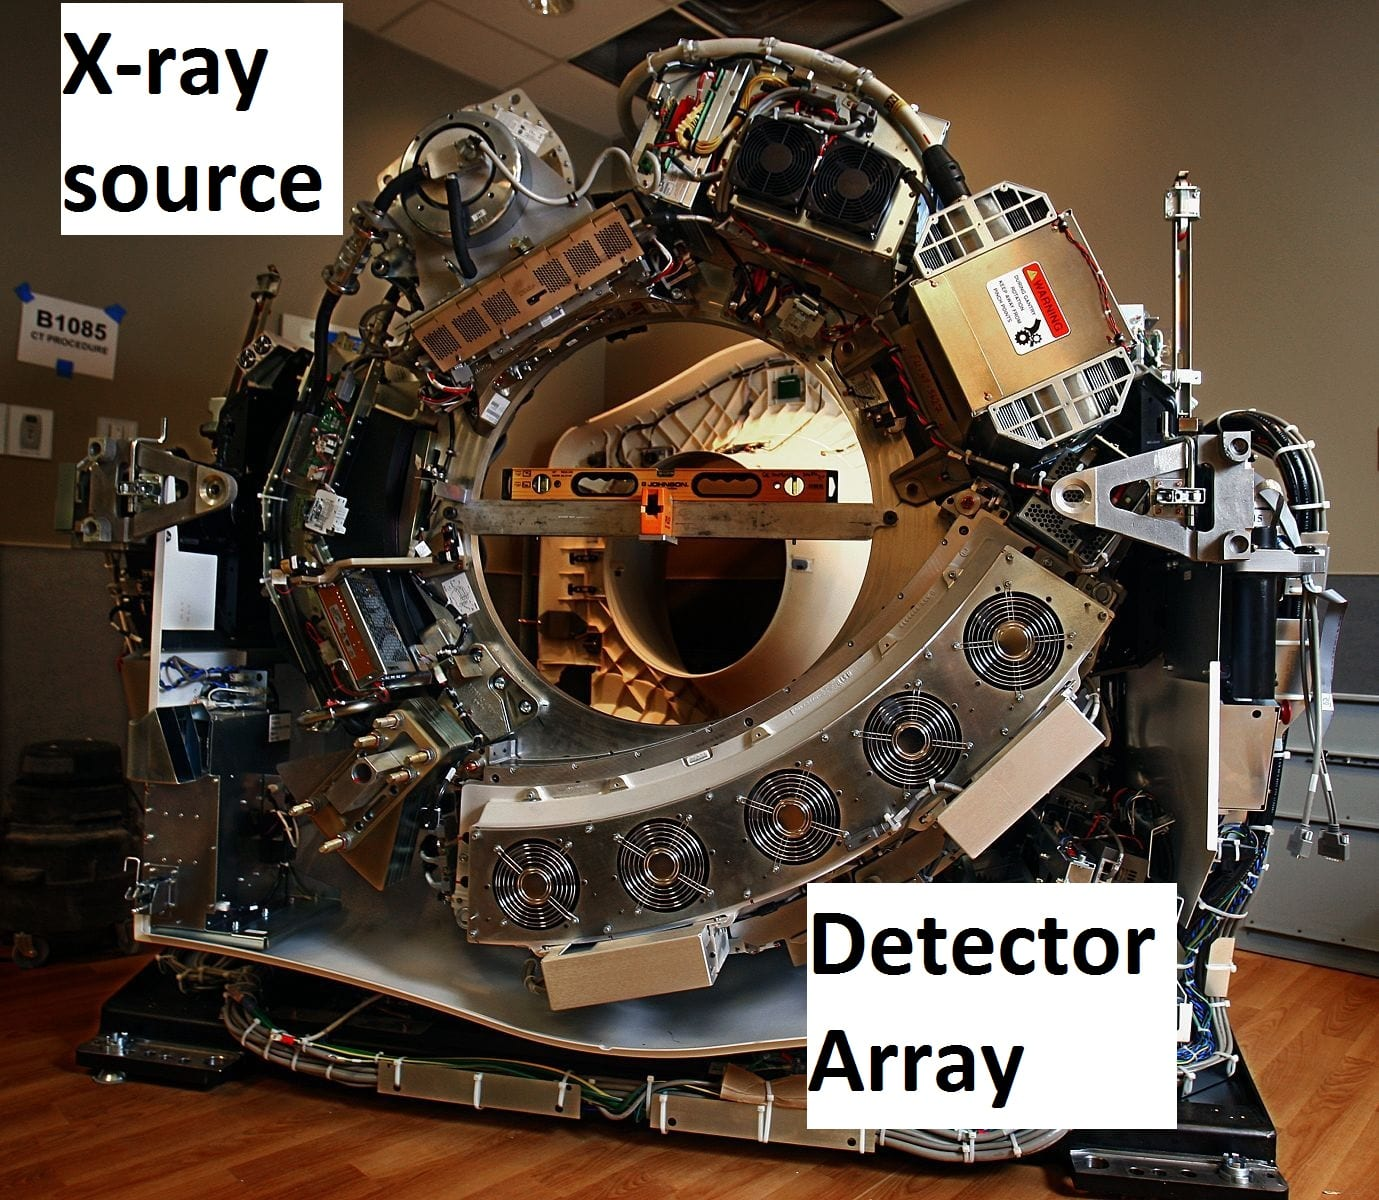 Internal components of a modern CT scanner. Note the x-ray source is placed opposite of the detector array on the gantry.